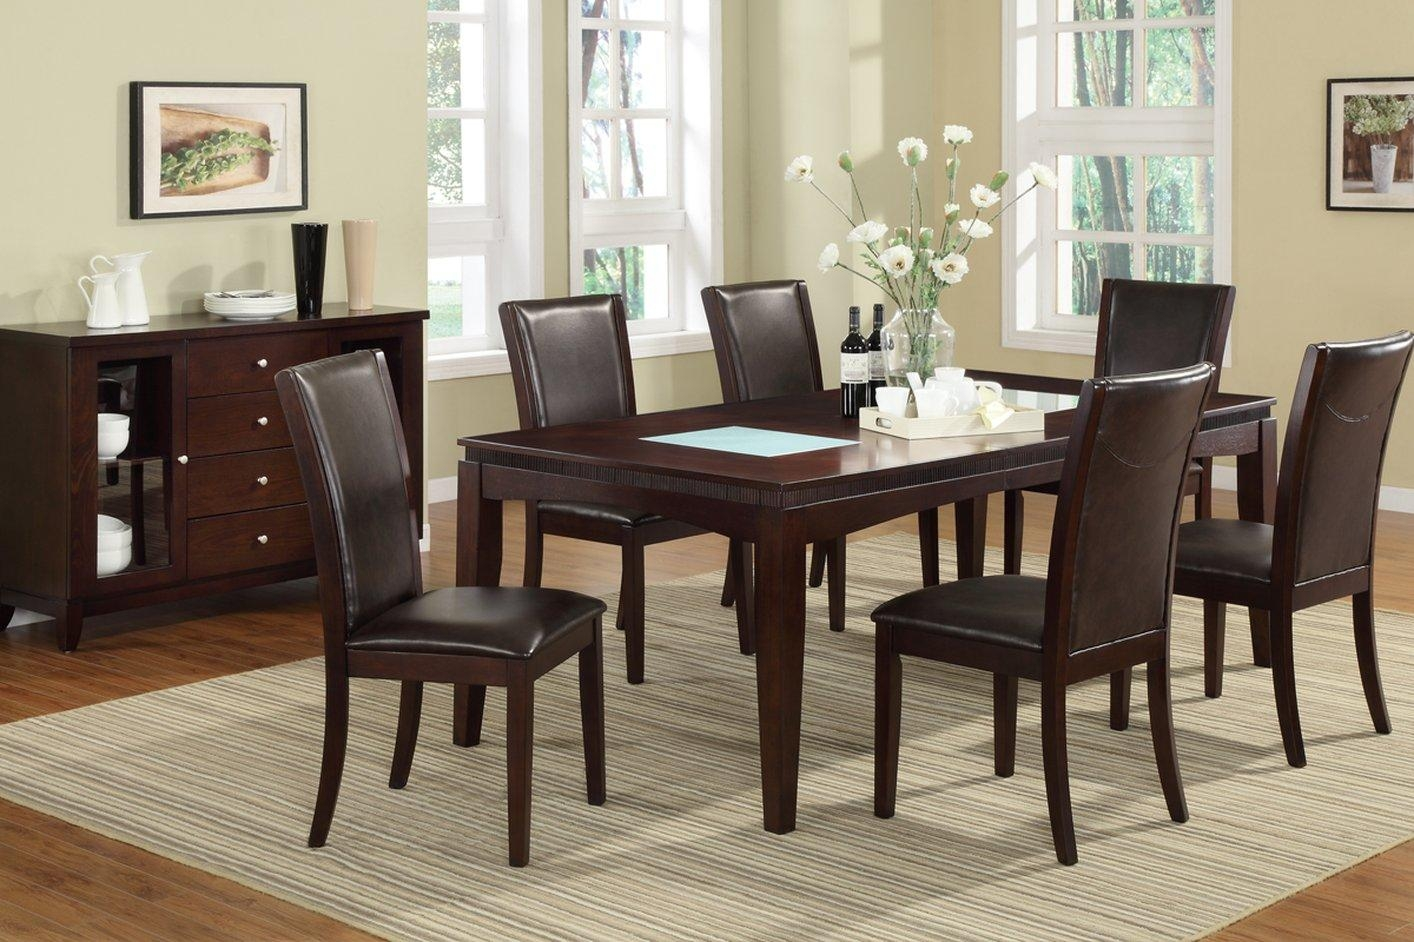 Poundex F2165 Brown Glass Dining Table – Steal A Sofa Furniture Pertaining To Dining Sofa Chairs (Image 17 of 20)